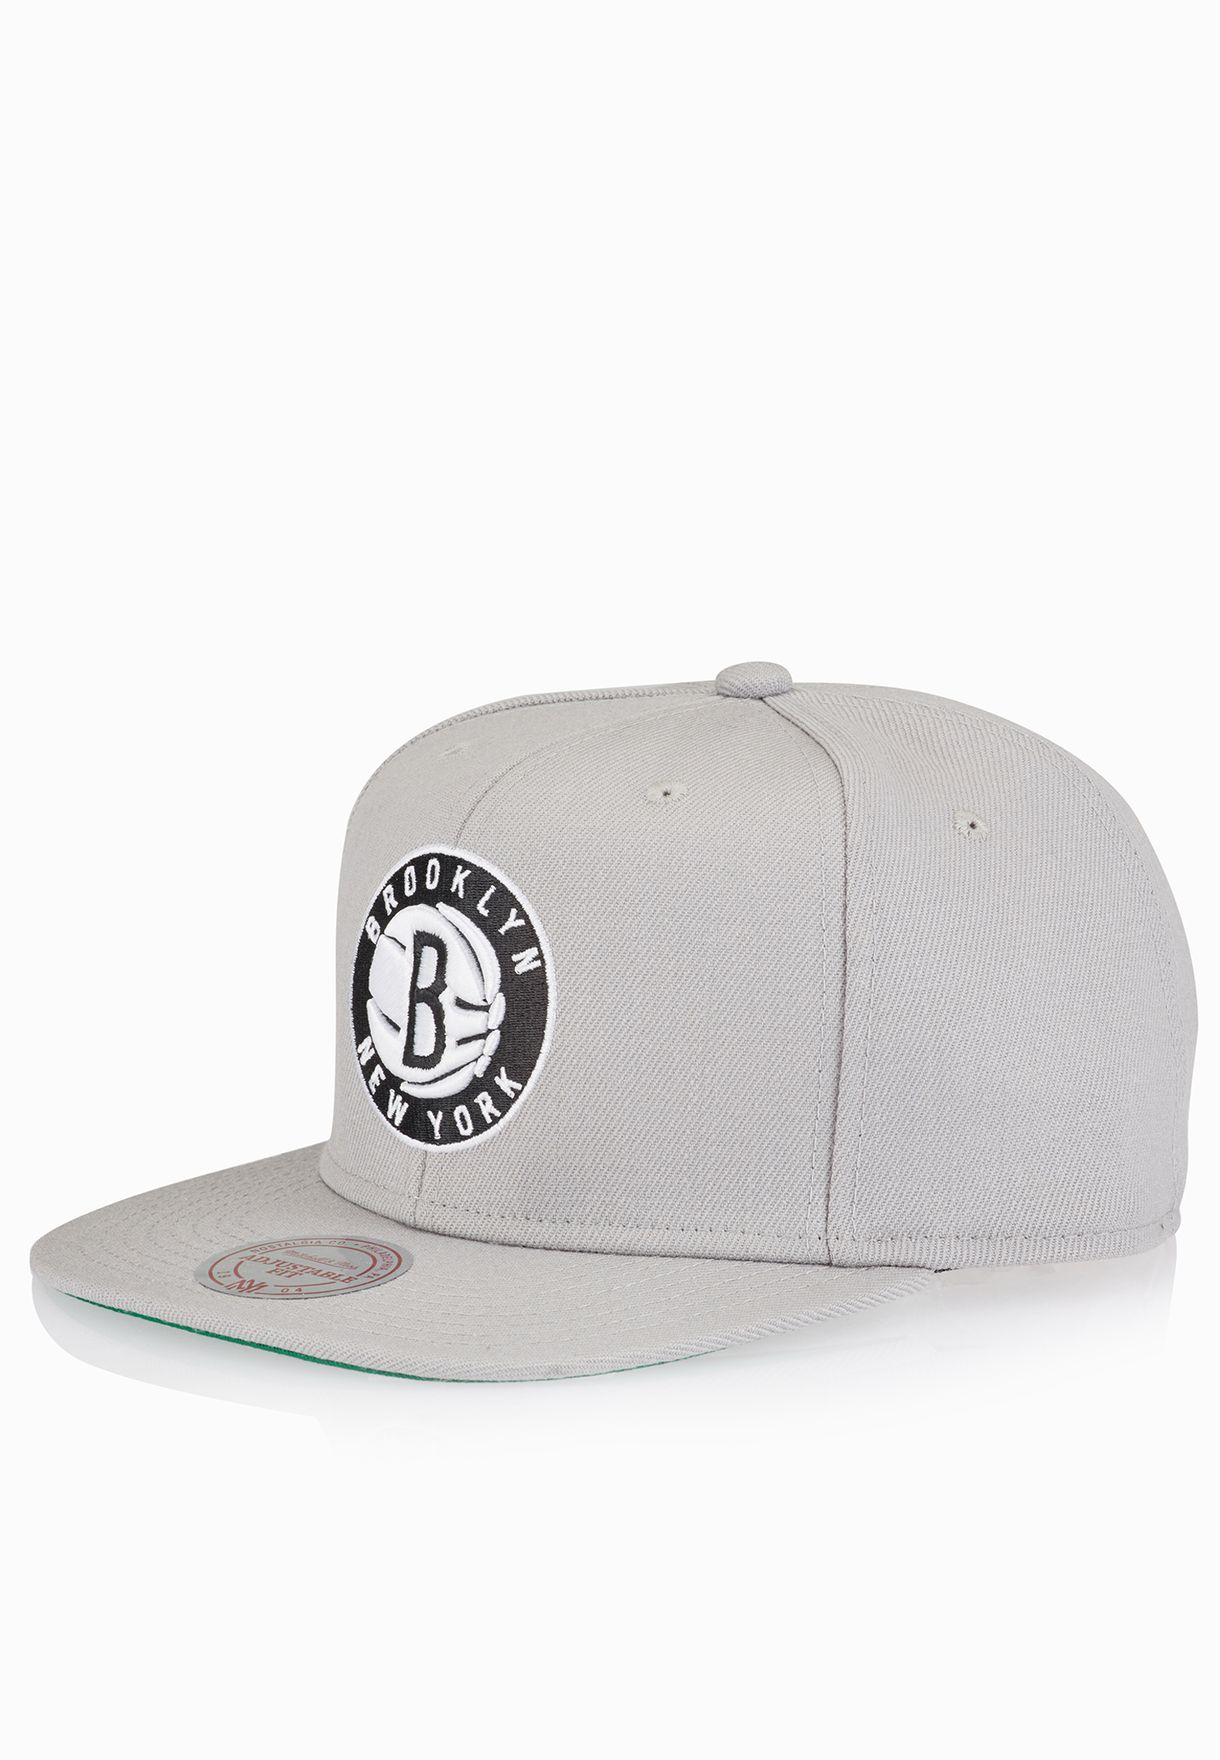 new style 7b990 49f25 Brooklyn Nets Snapback